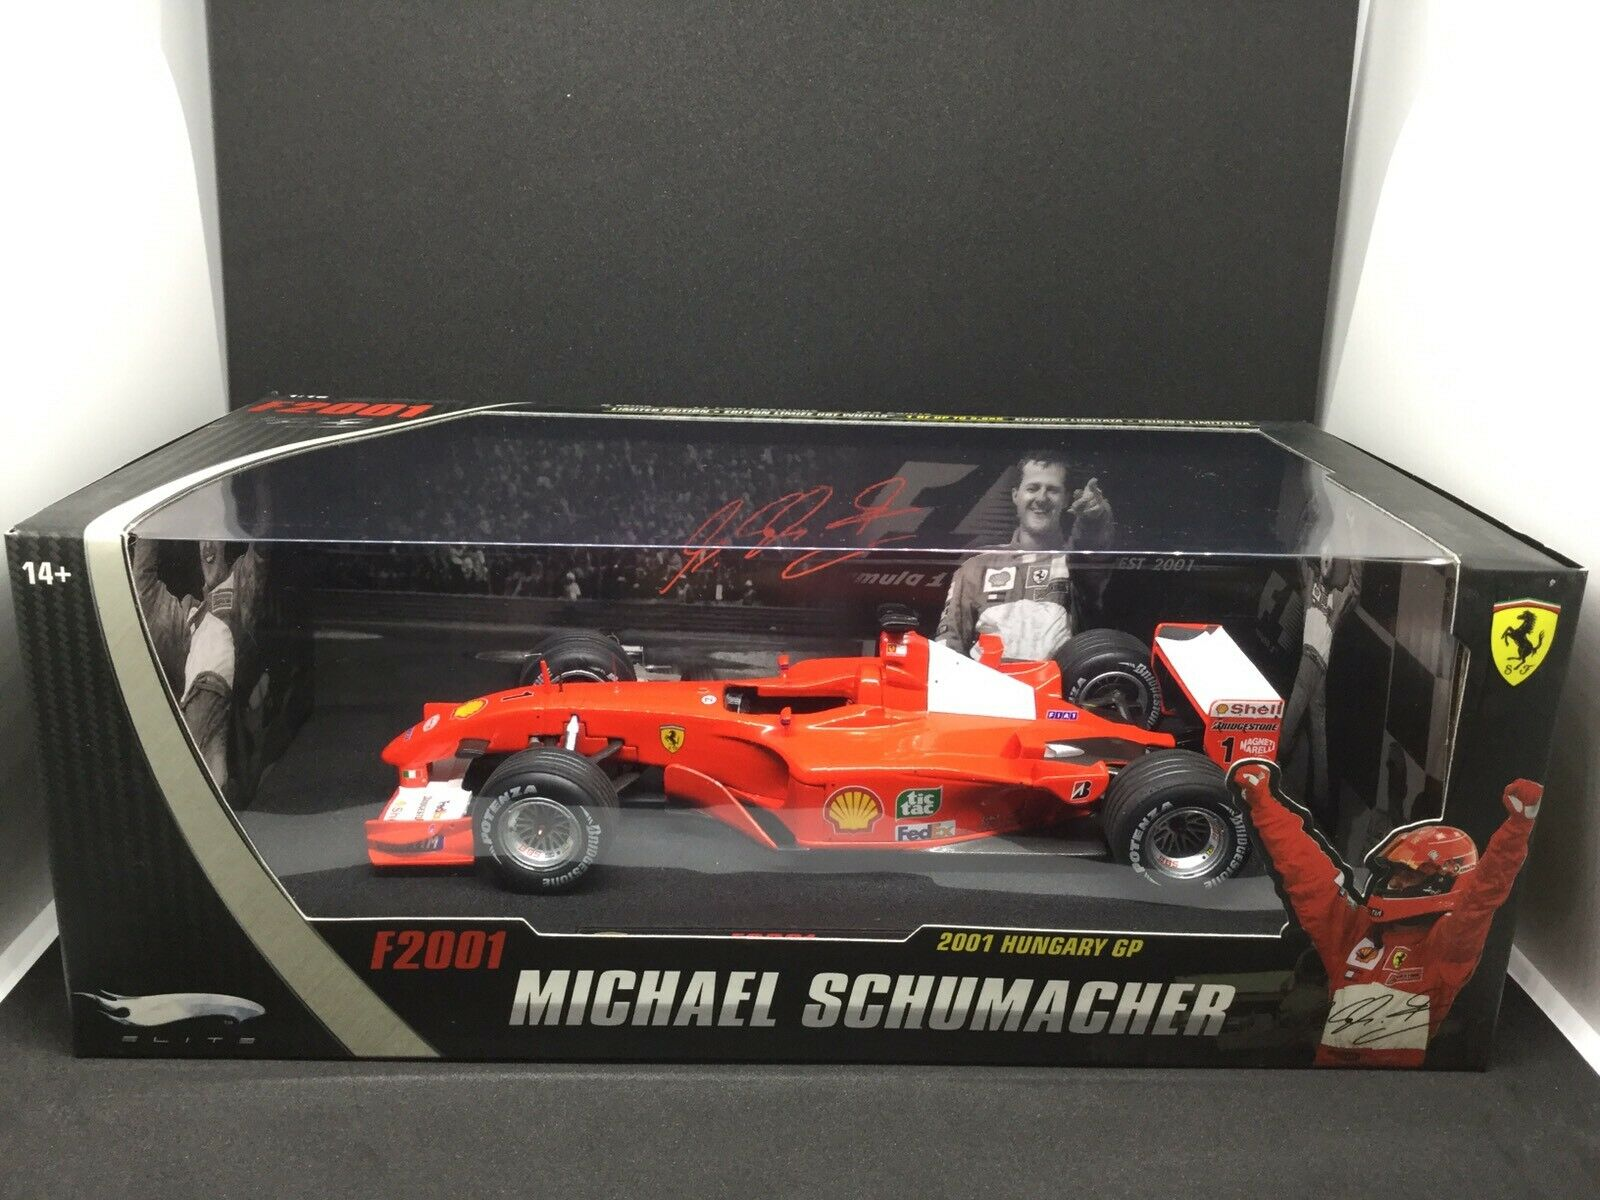 venta al por mayor barato FERRARI F2001 Schumacher Schumacher Schumacher Hungary Gp Scala 1 18 Hot Wheels Elite Limited Edition  Las ventas en línea ahorran un 70%.